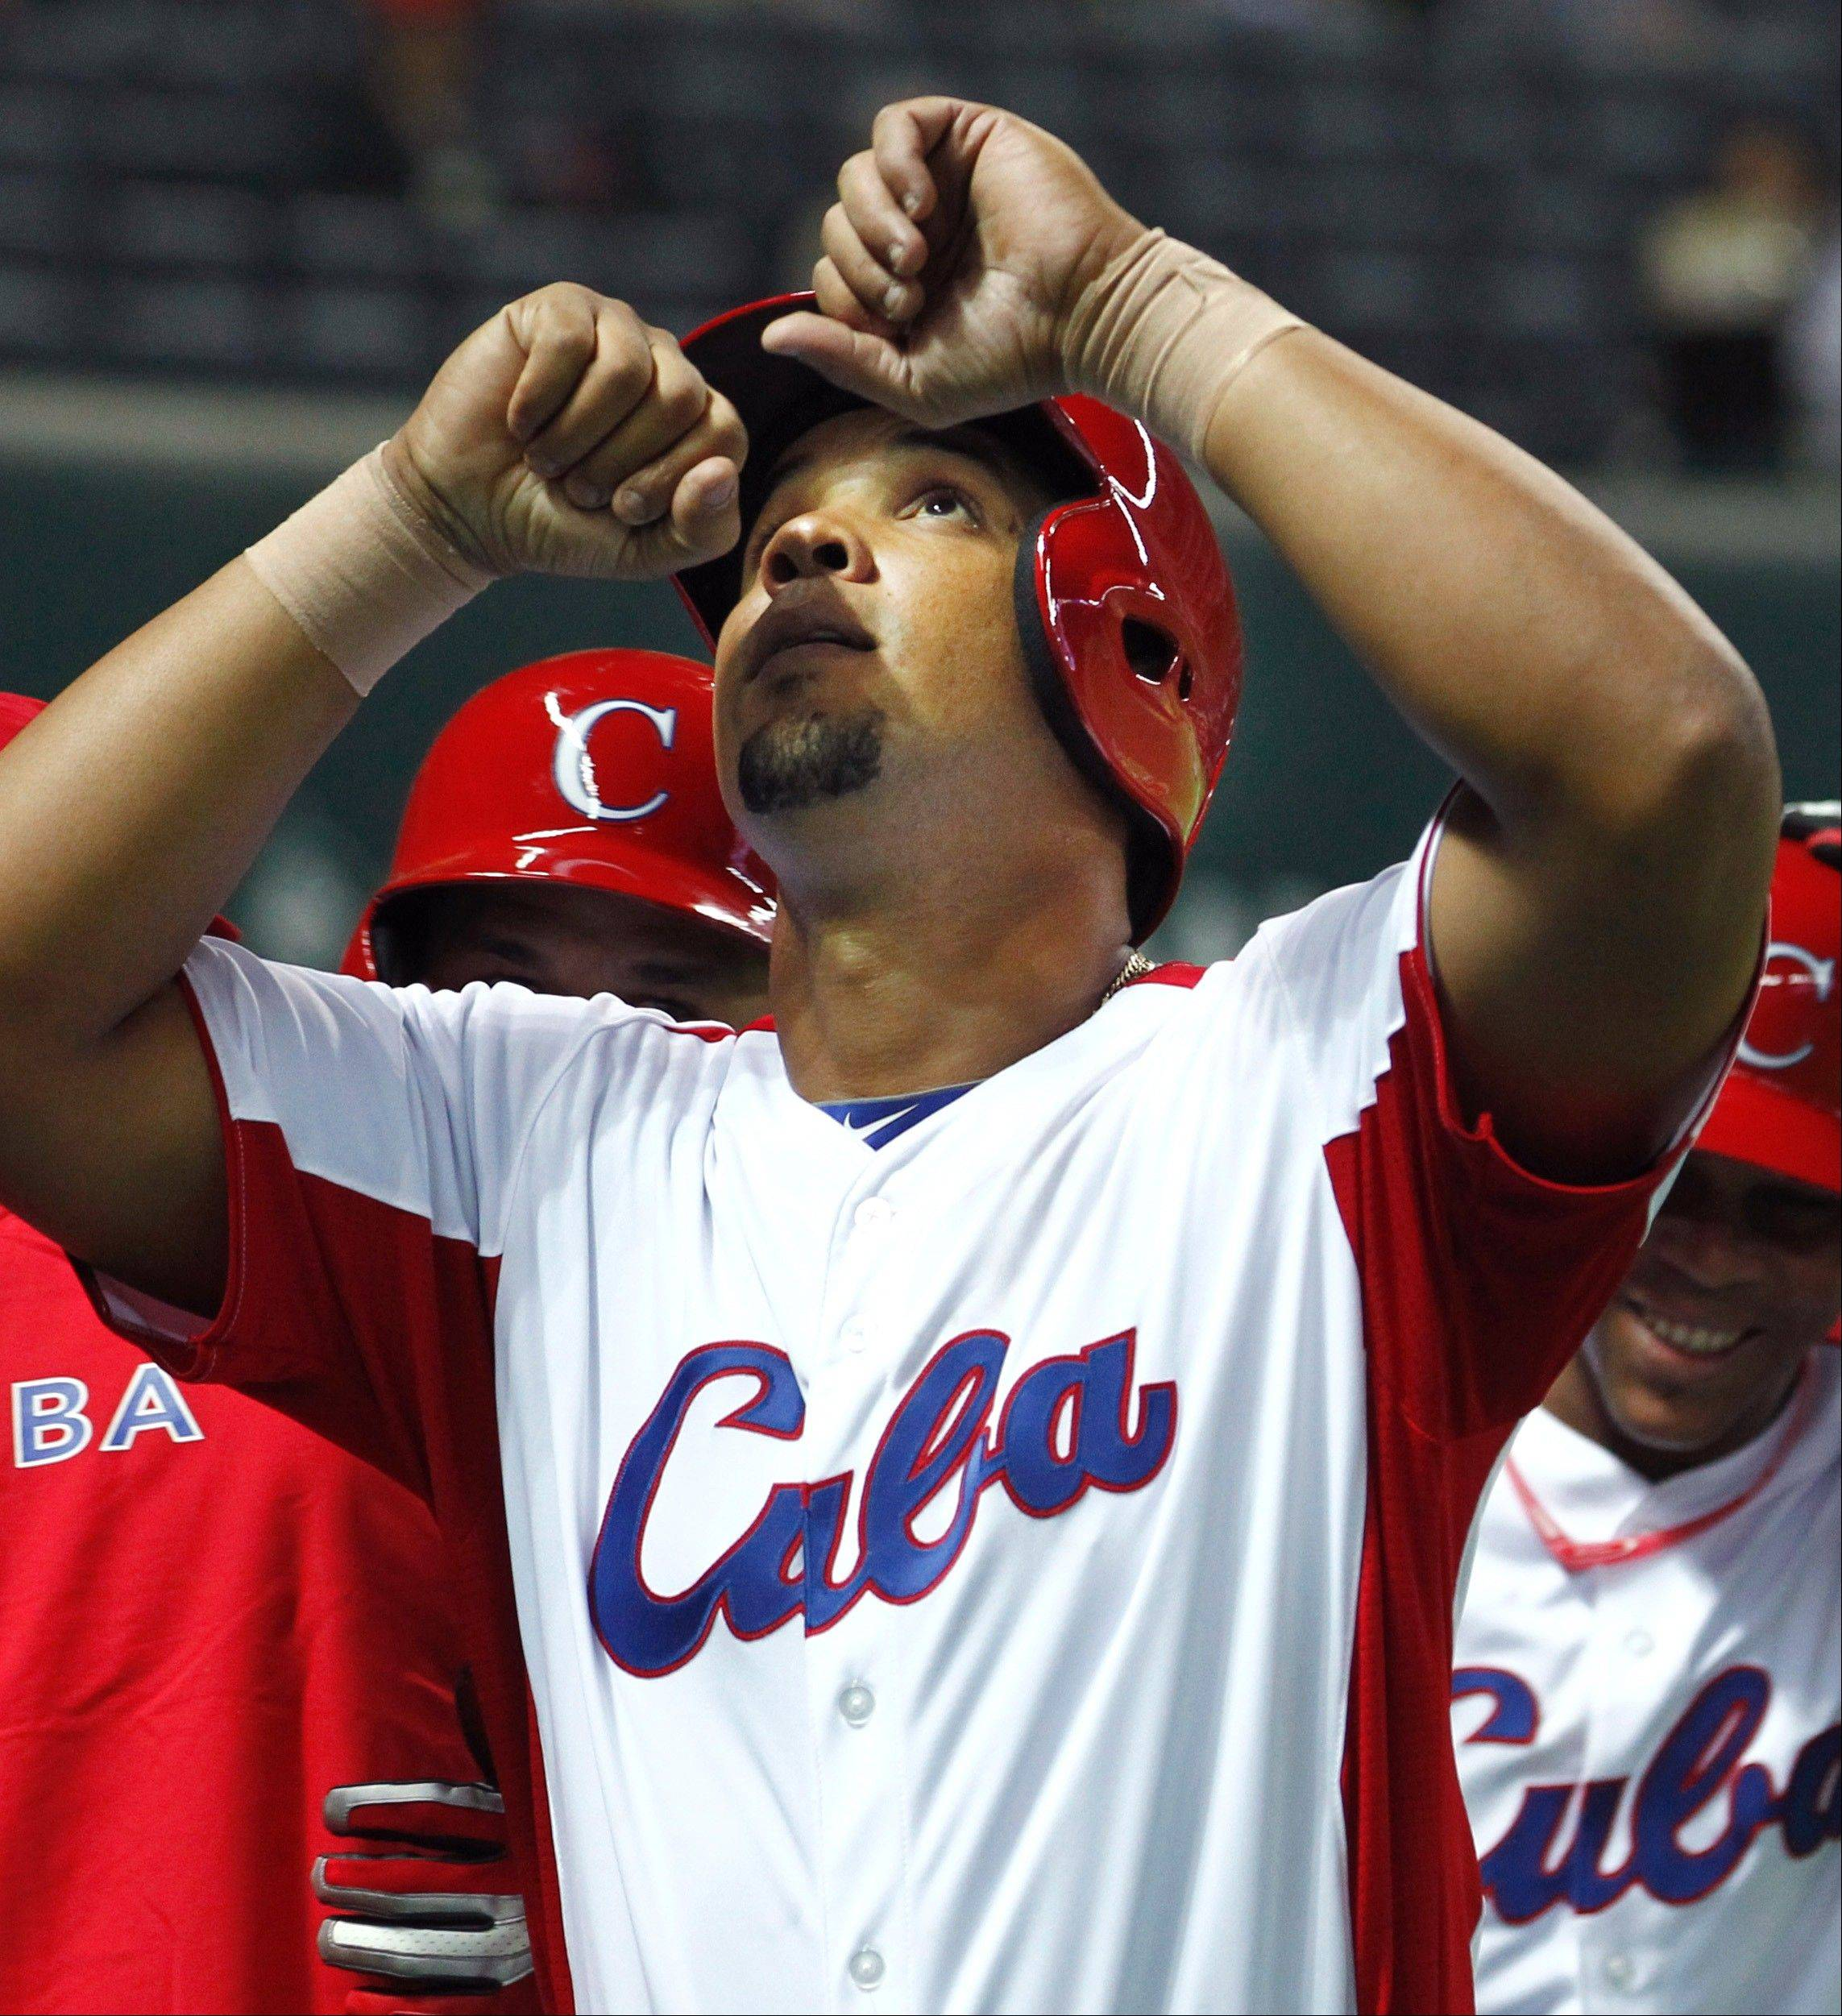 Cuba's first baseman Jose Abreu reacts after hitting a grand slam off China's Liu Yu in the fifth inning of their World Baseball Classic first round game in Fukuoka, Japan, Monday, March 4, 2013.